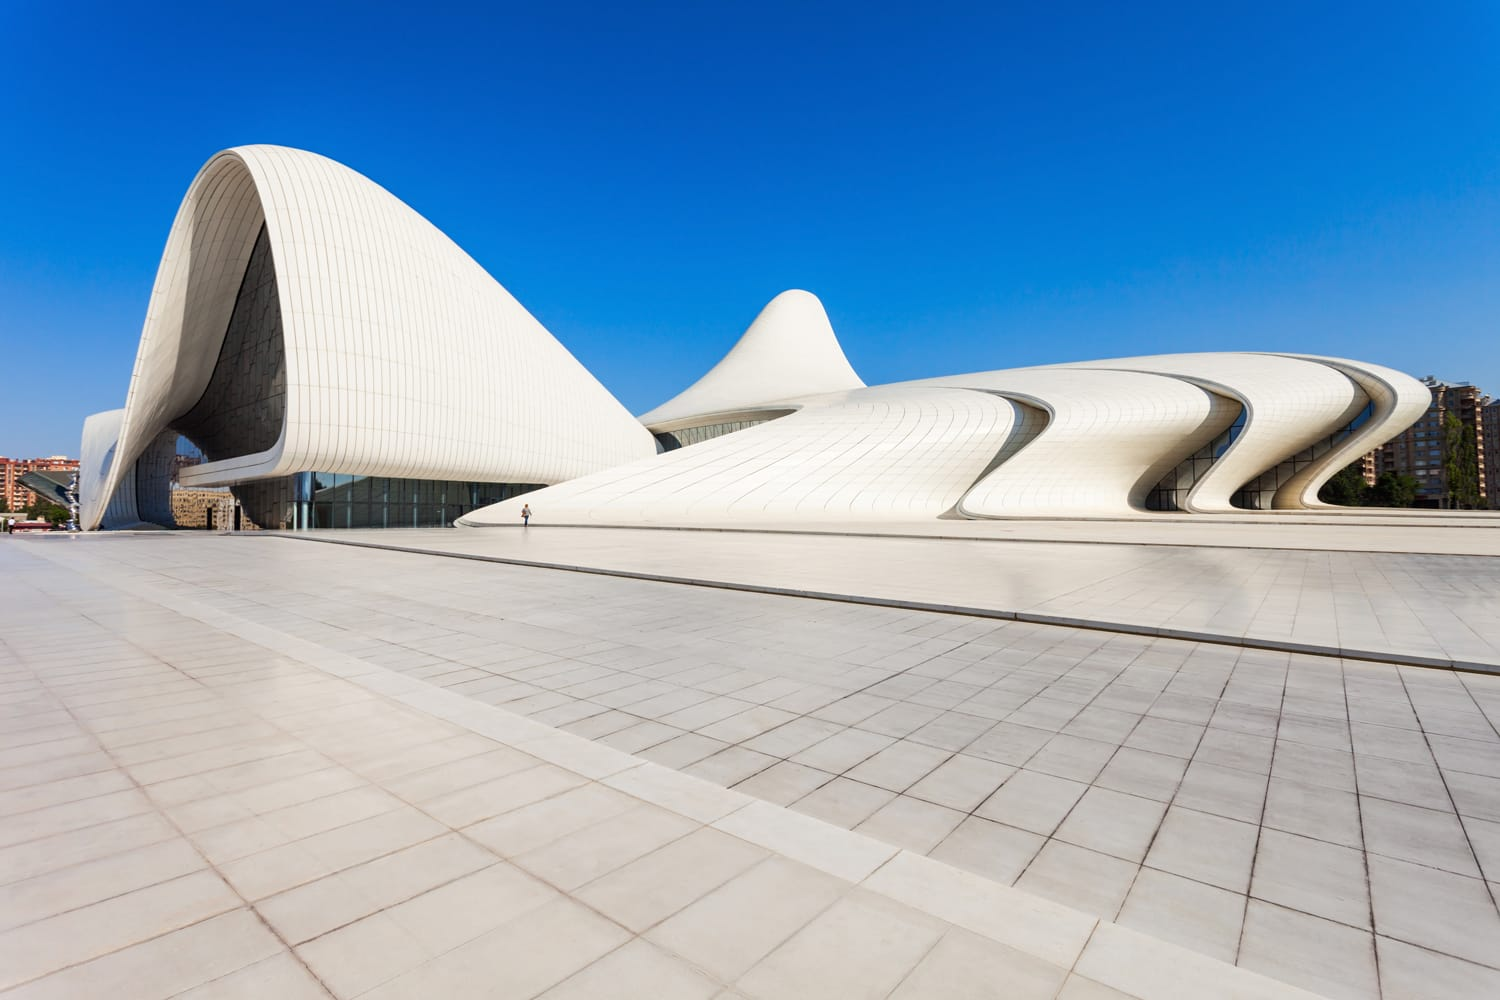 The Heydar Aliyev Center is a building complex in Baku, Azerbaijan designed by Zaha Hadid and noted for its distinctive architecture and flowing, curved style.